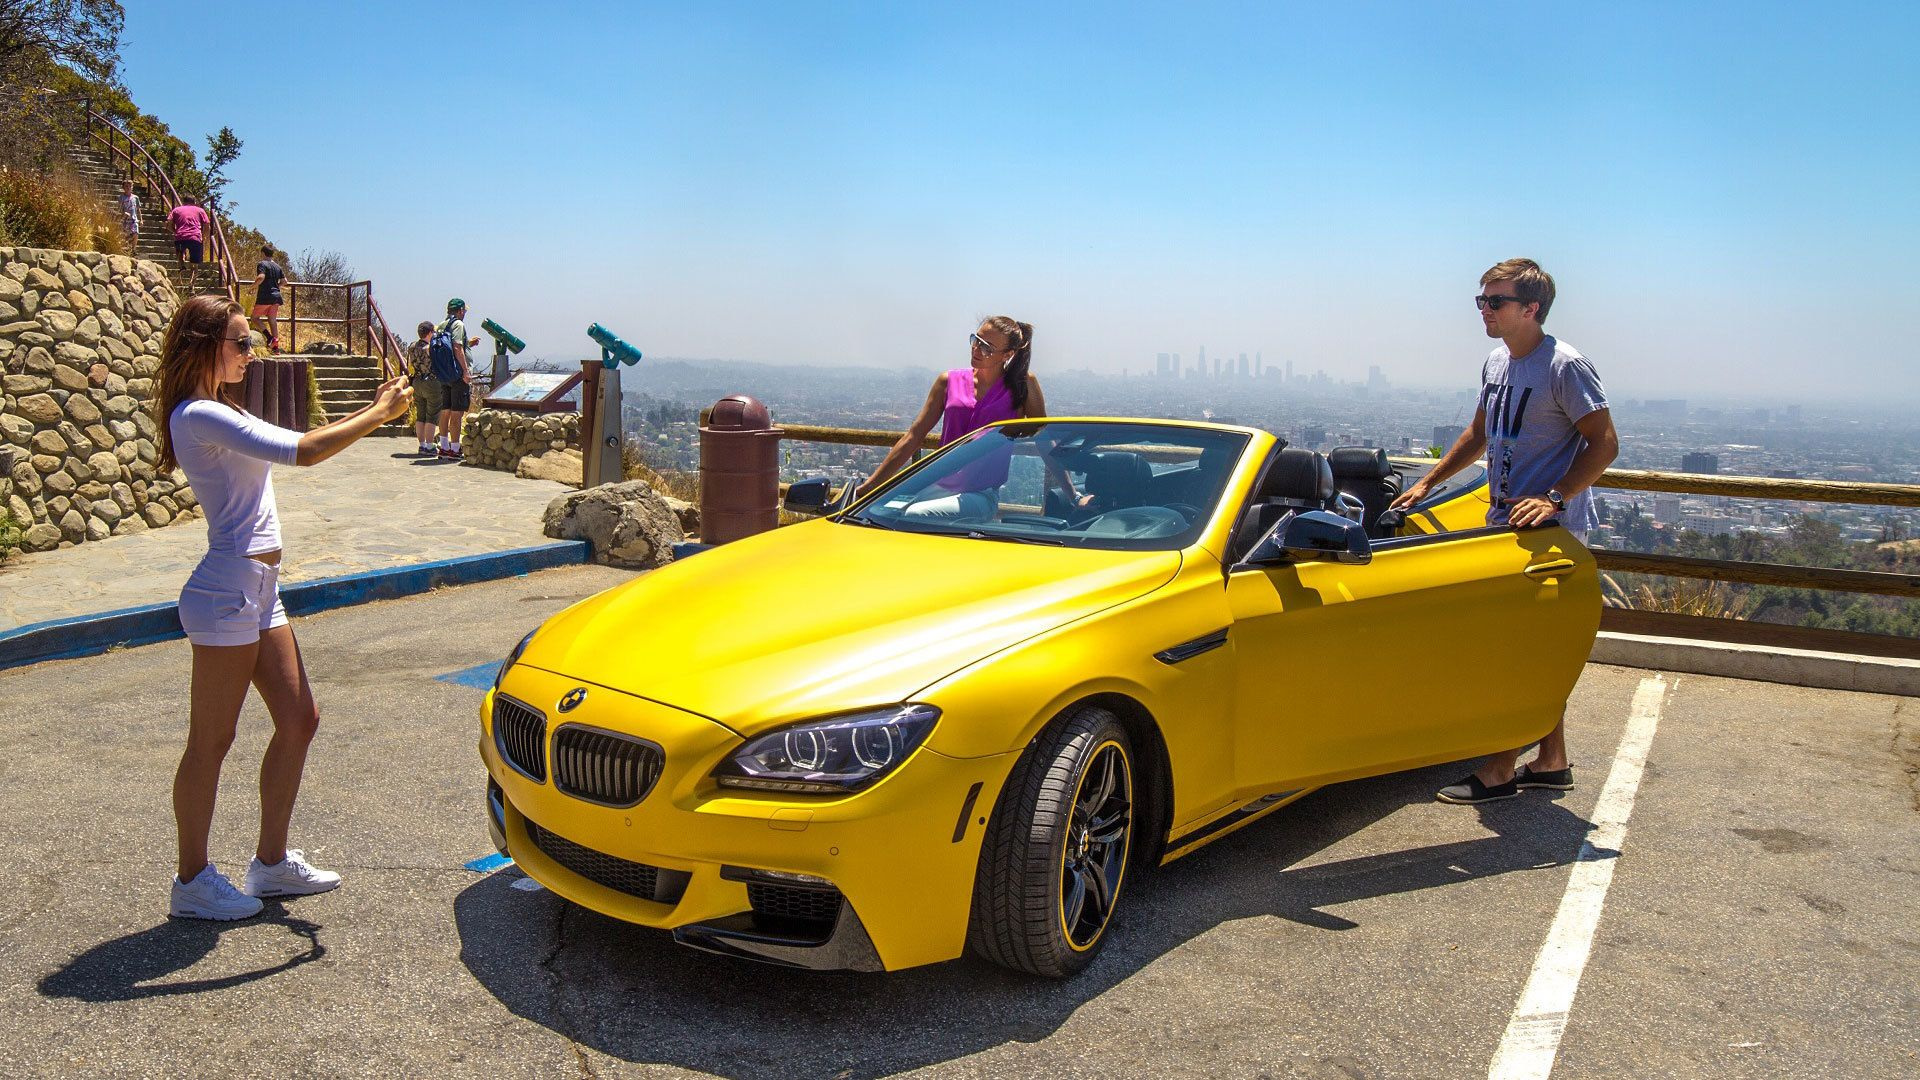 Couple posing with BMW sport convertible at overlook of Los Angeles